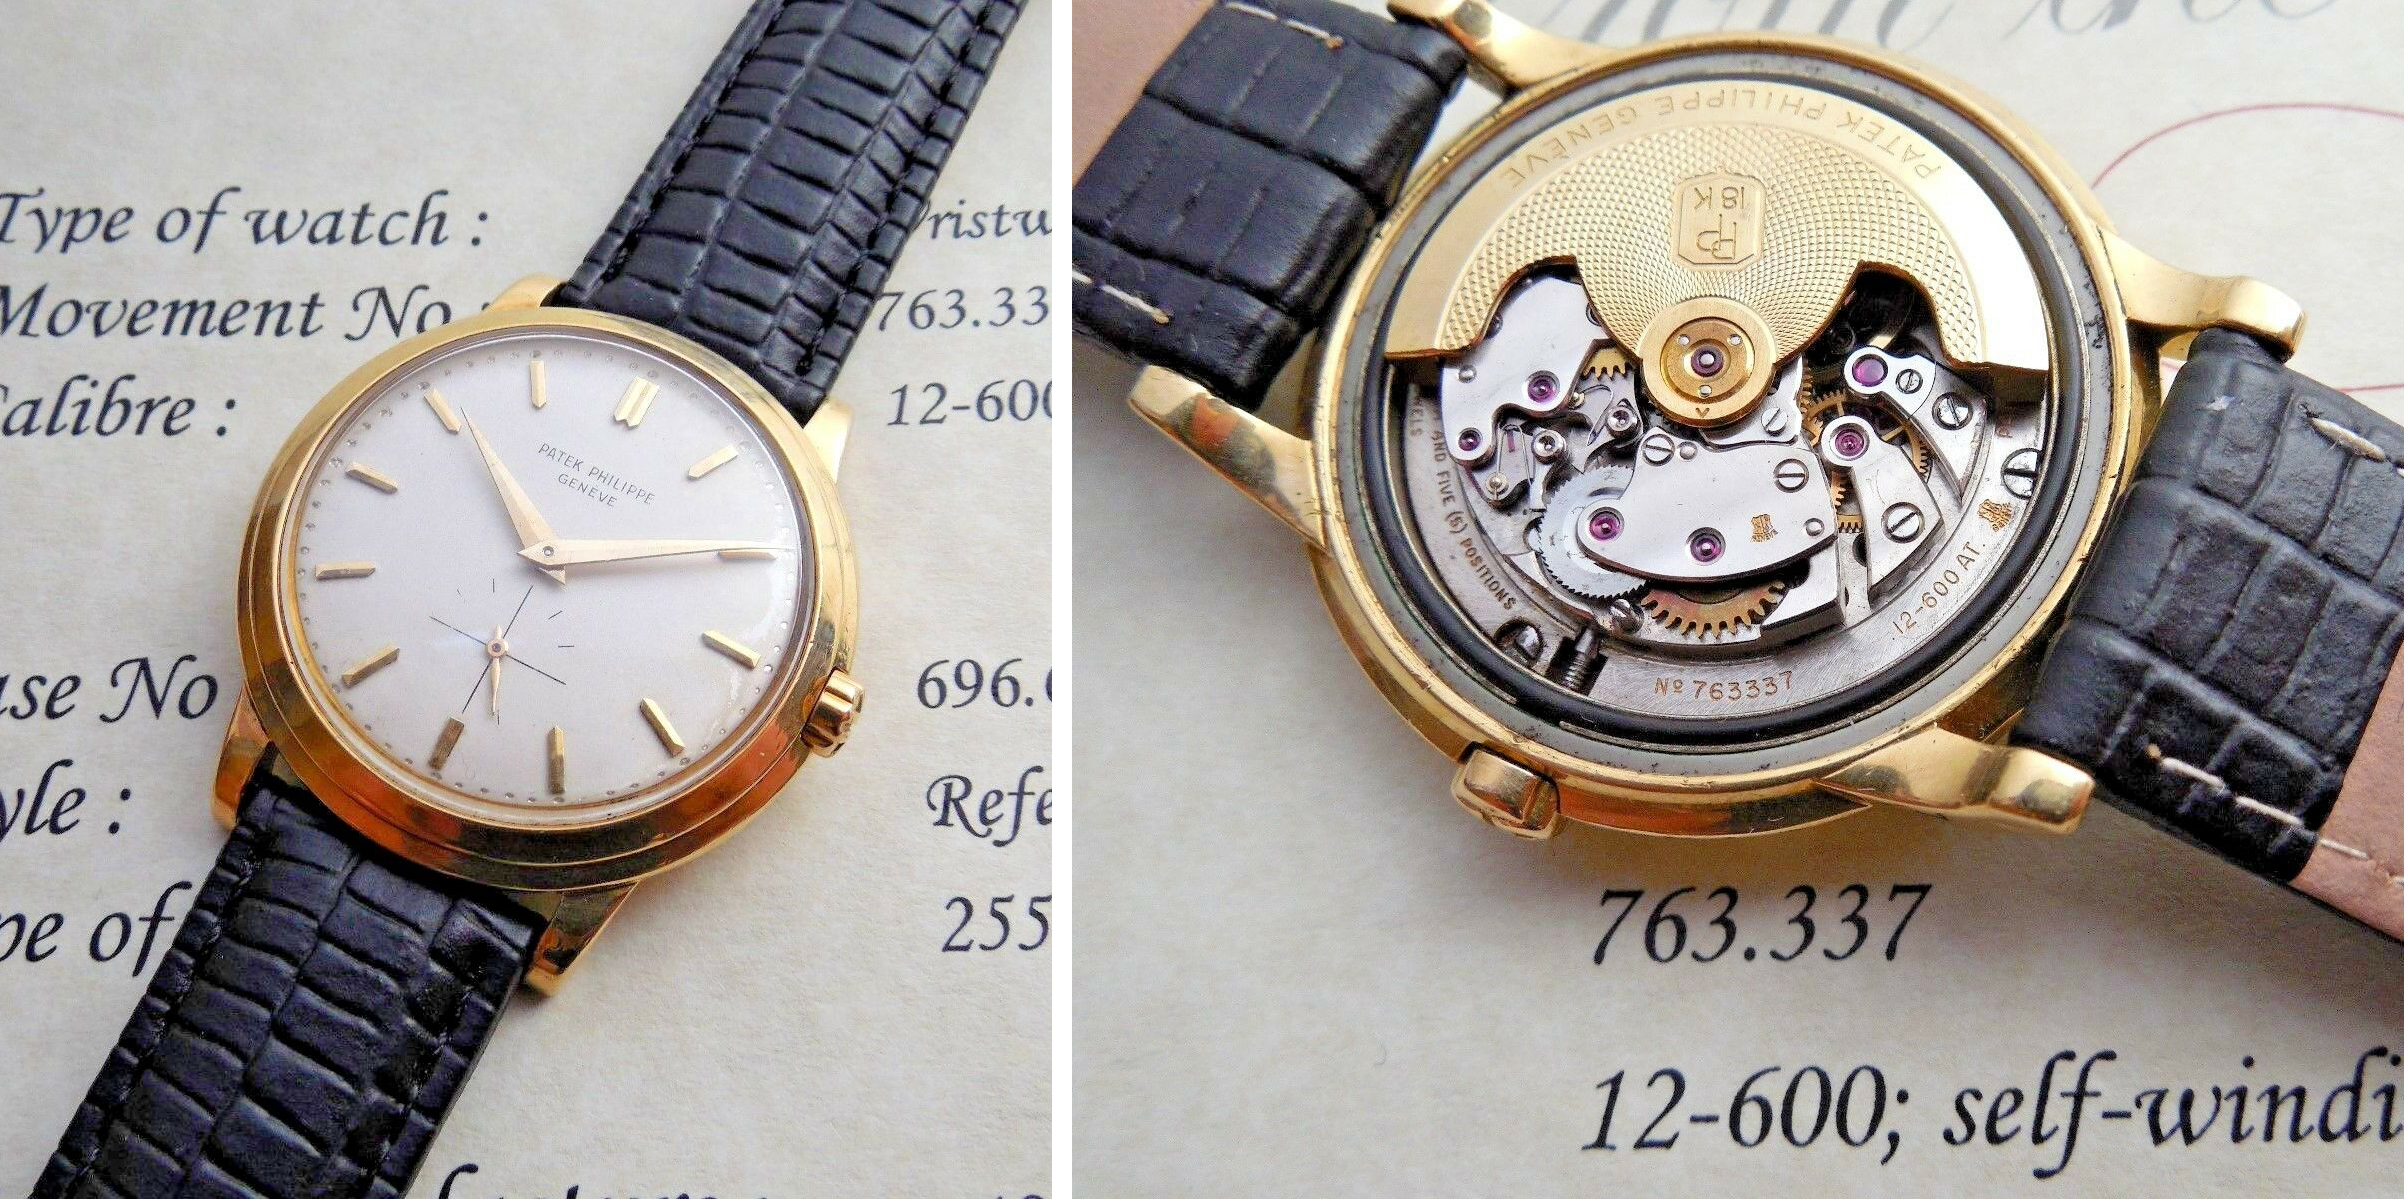 1956 18k GOLD PATEK PHILIPPE CALATRAVA REF 2552 AUTOMATIC 12-600AT 36MM PAPERS